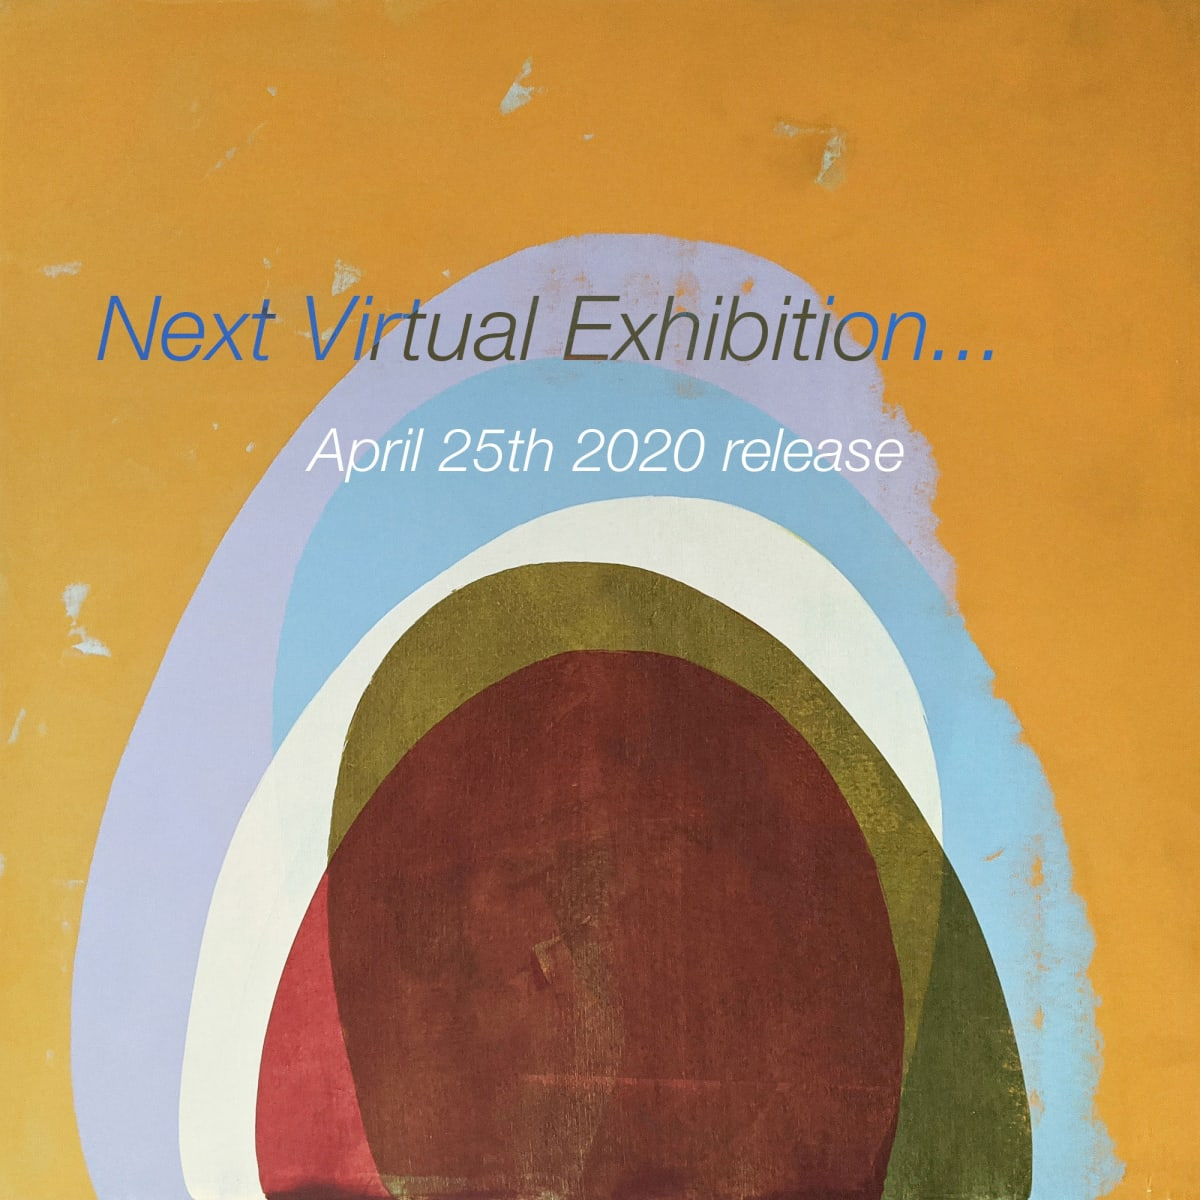 Virtual Exhibition 2, Opens April 25th 2020